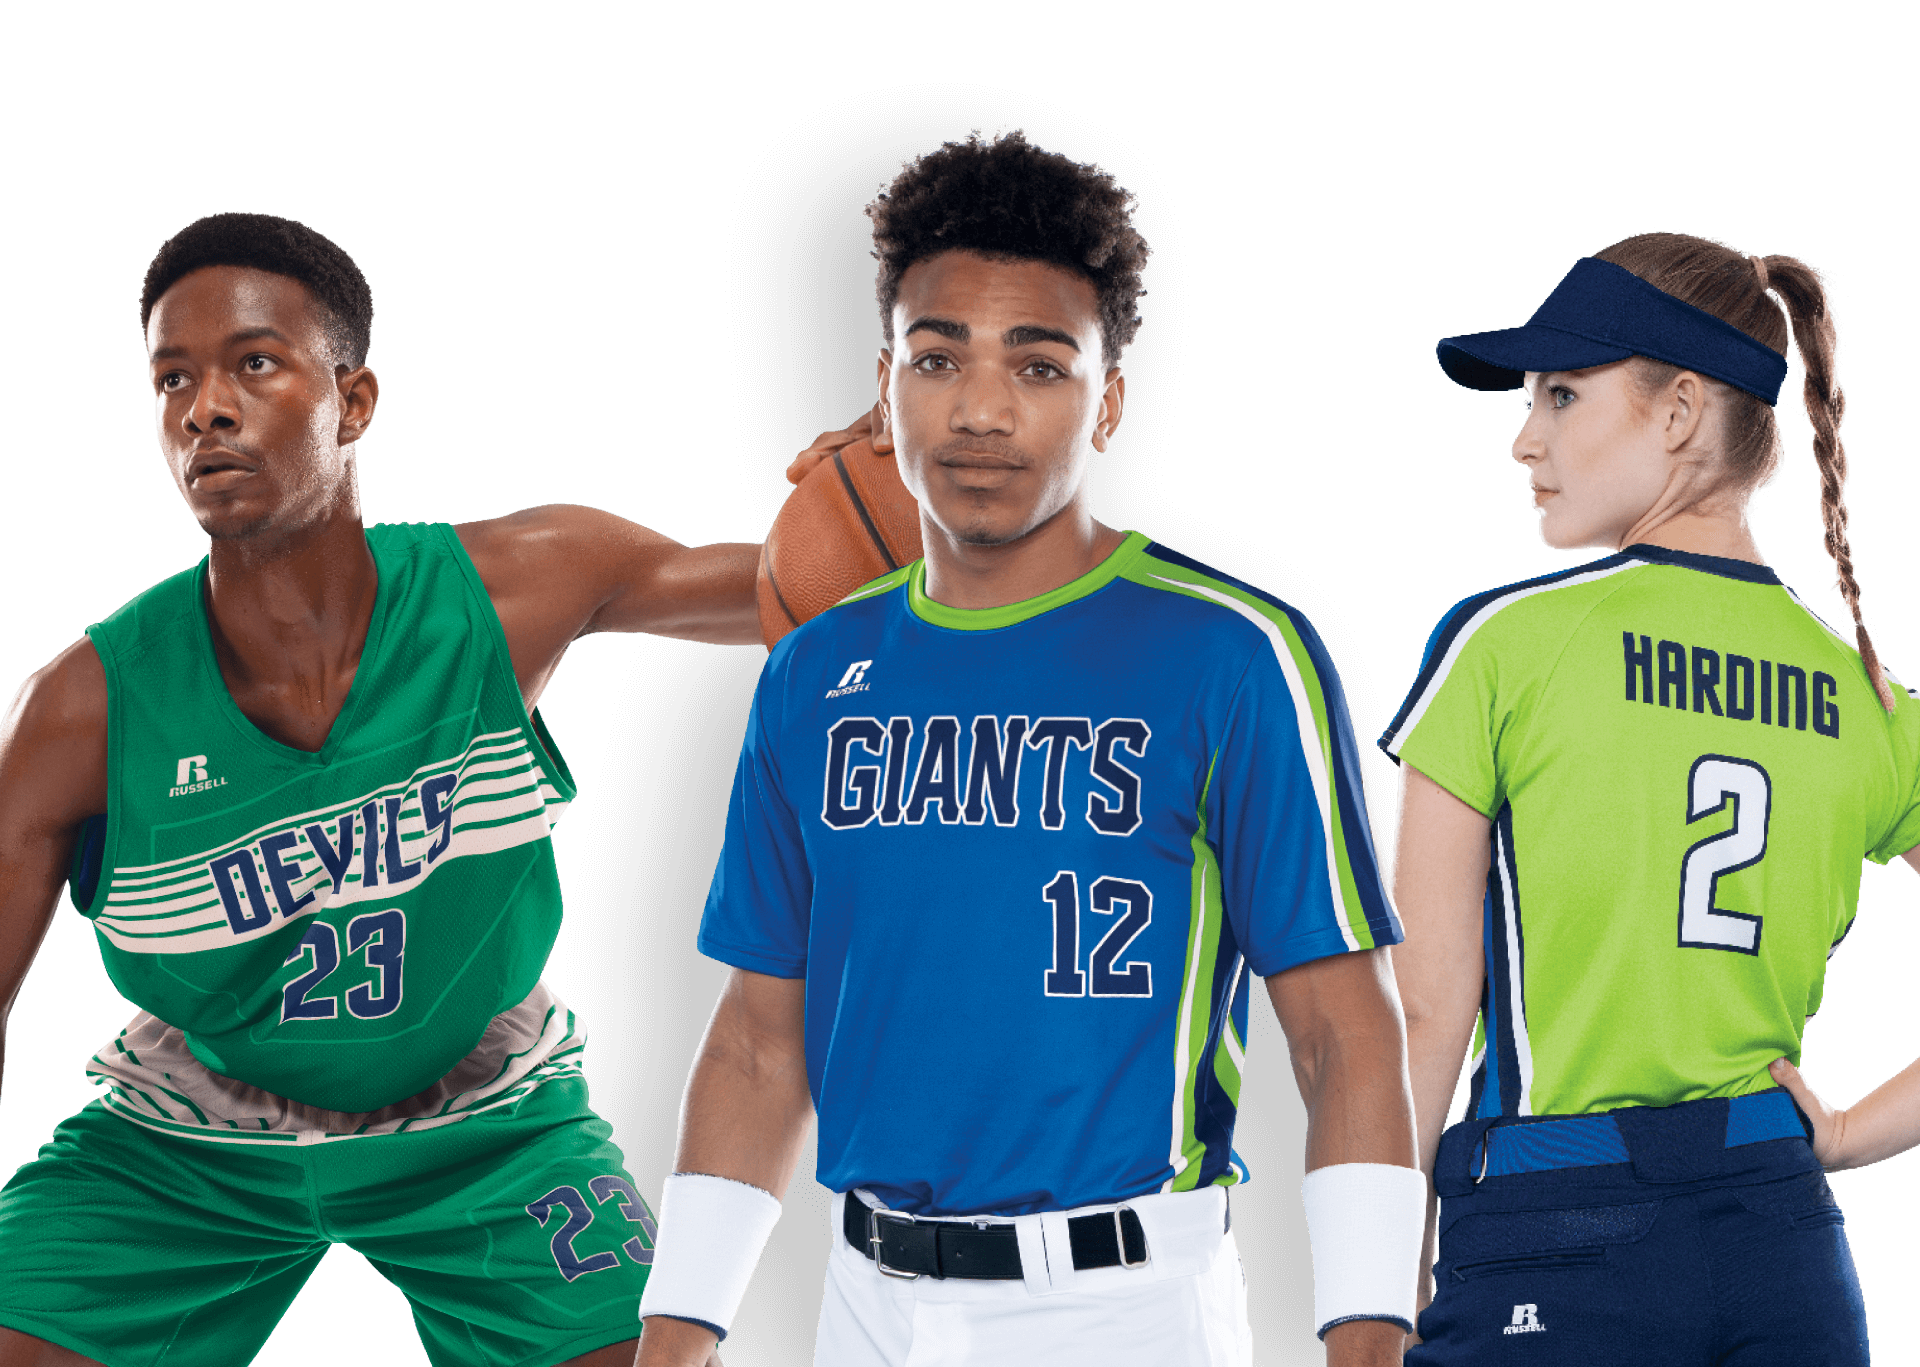 Russell Athletic sublimation models